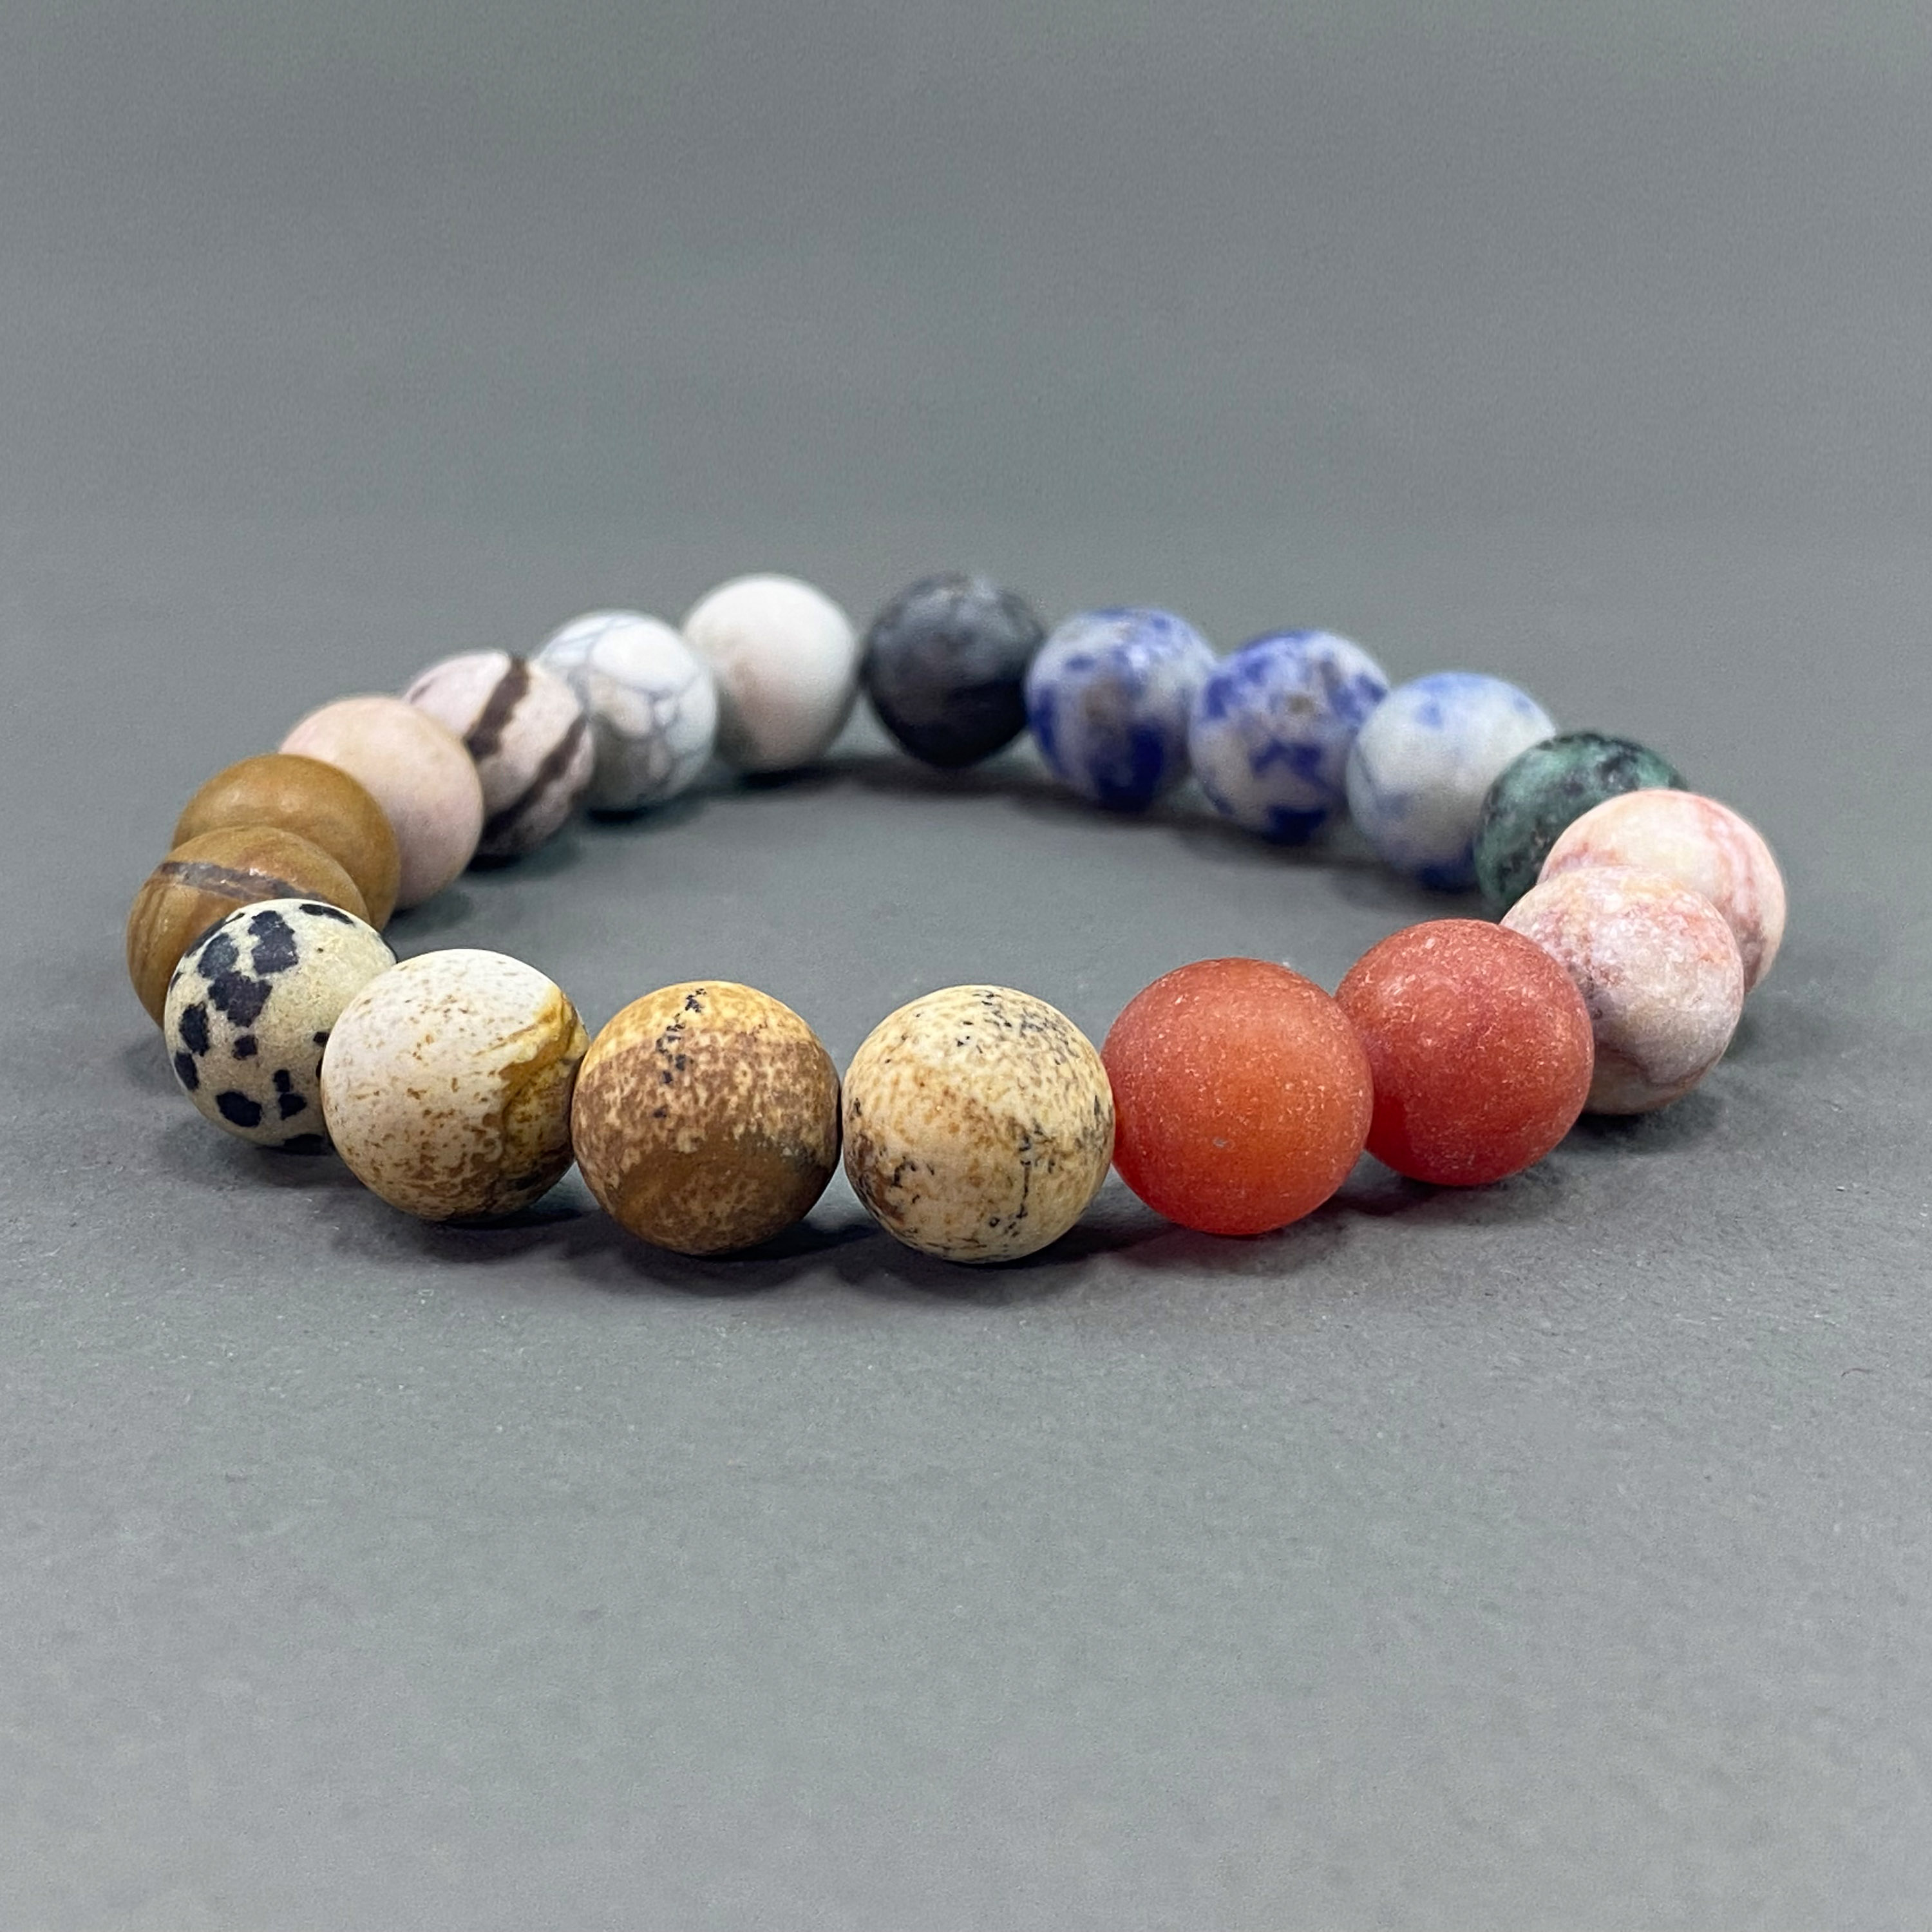 stone beads - colorful